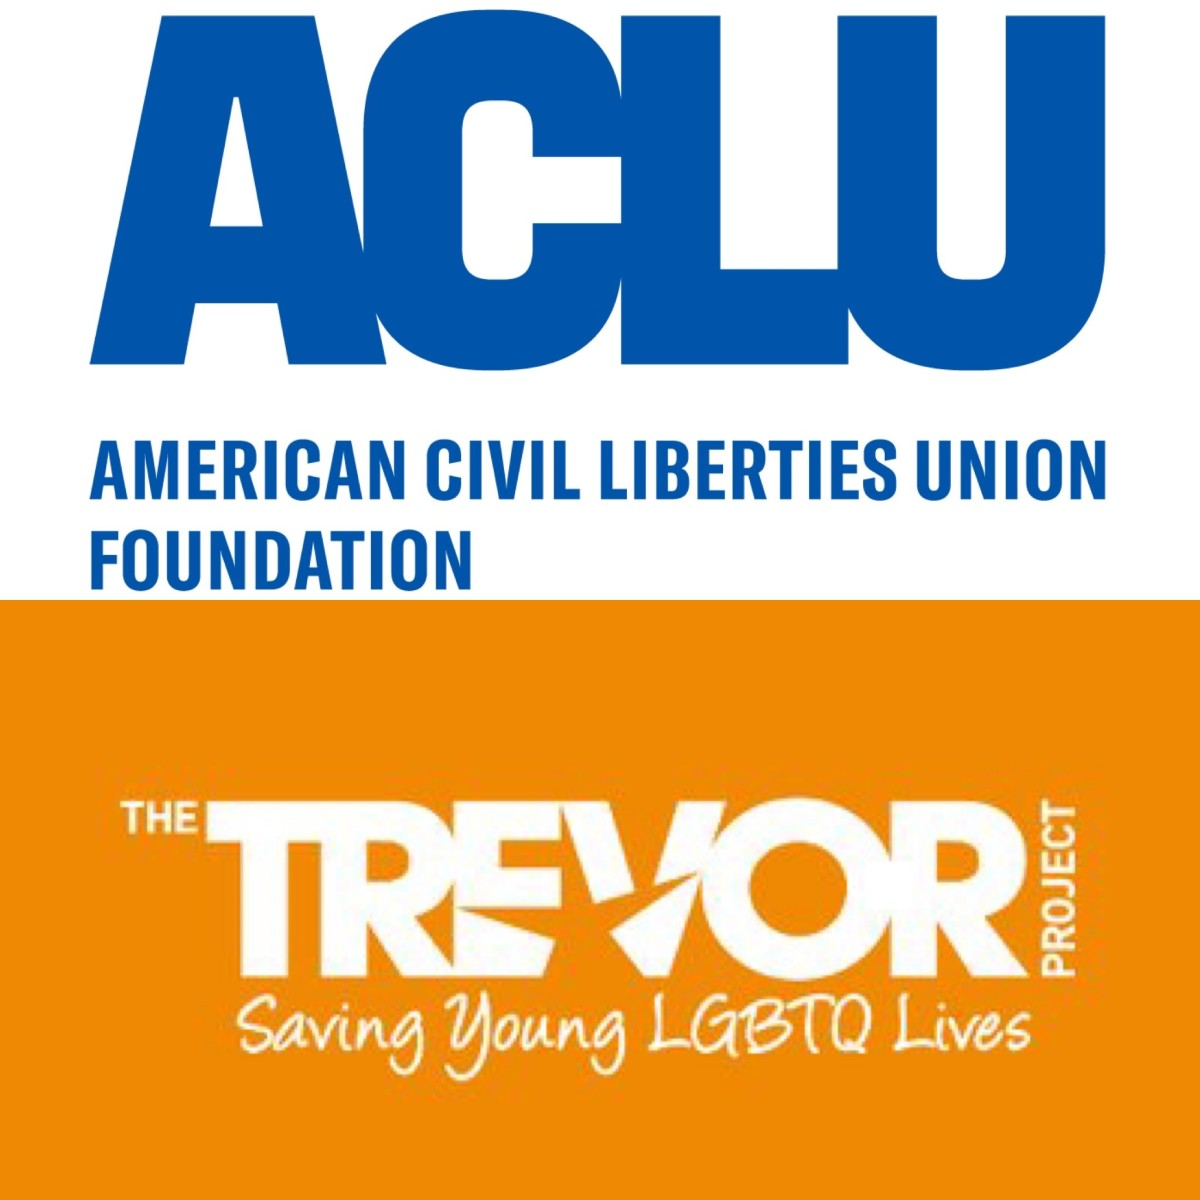 Phil's is the American Civil Liberties Union and Akeem's is the Trevor Project.